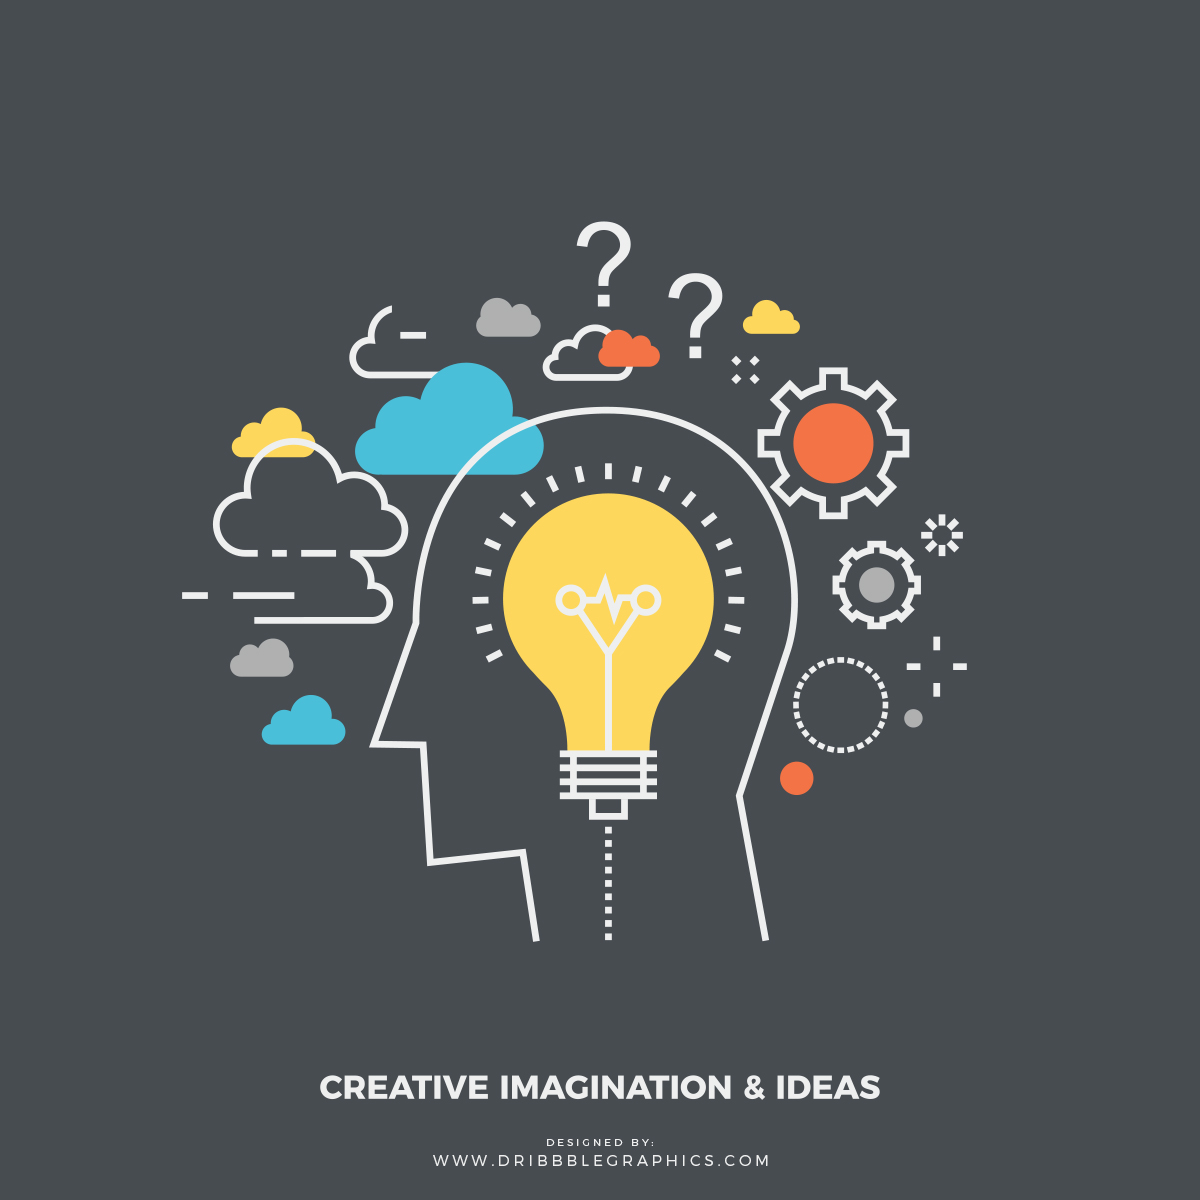 Free-Creative-Imagination-&-Ideas-Vector-Illustration-2018-600